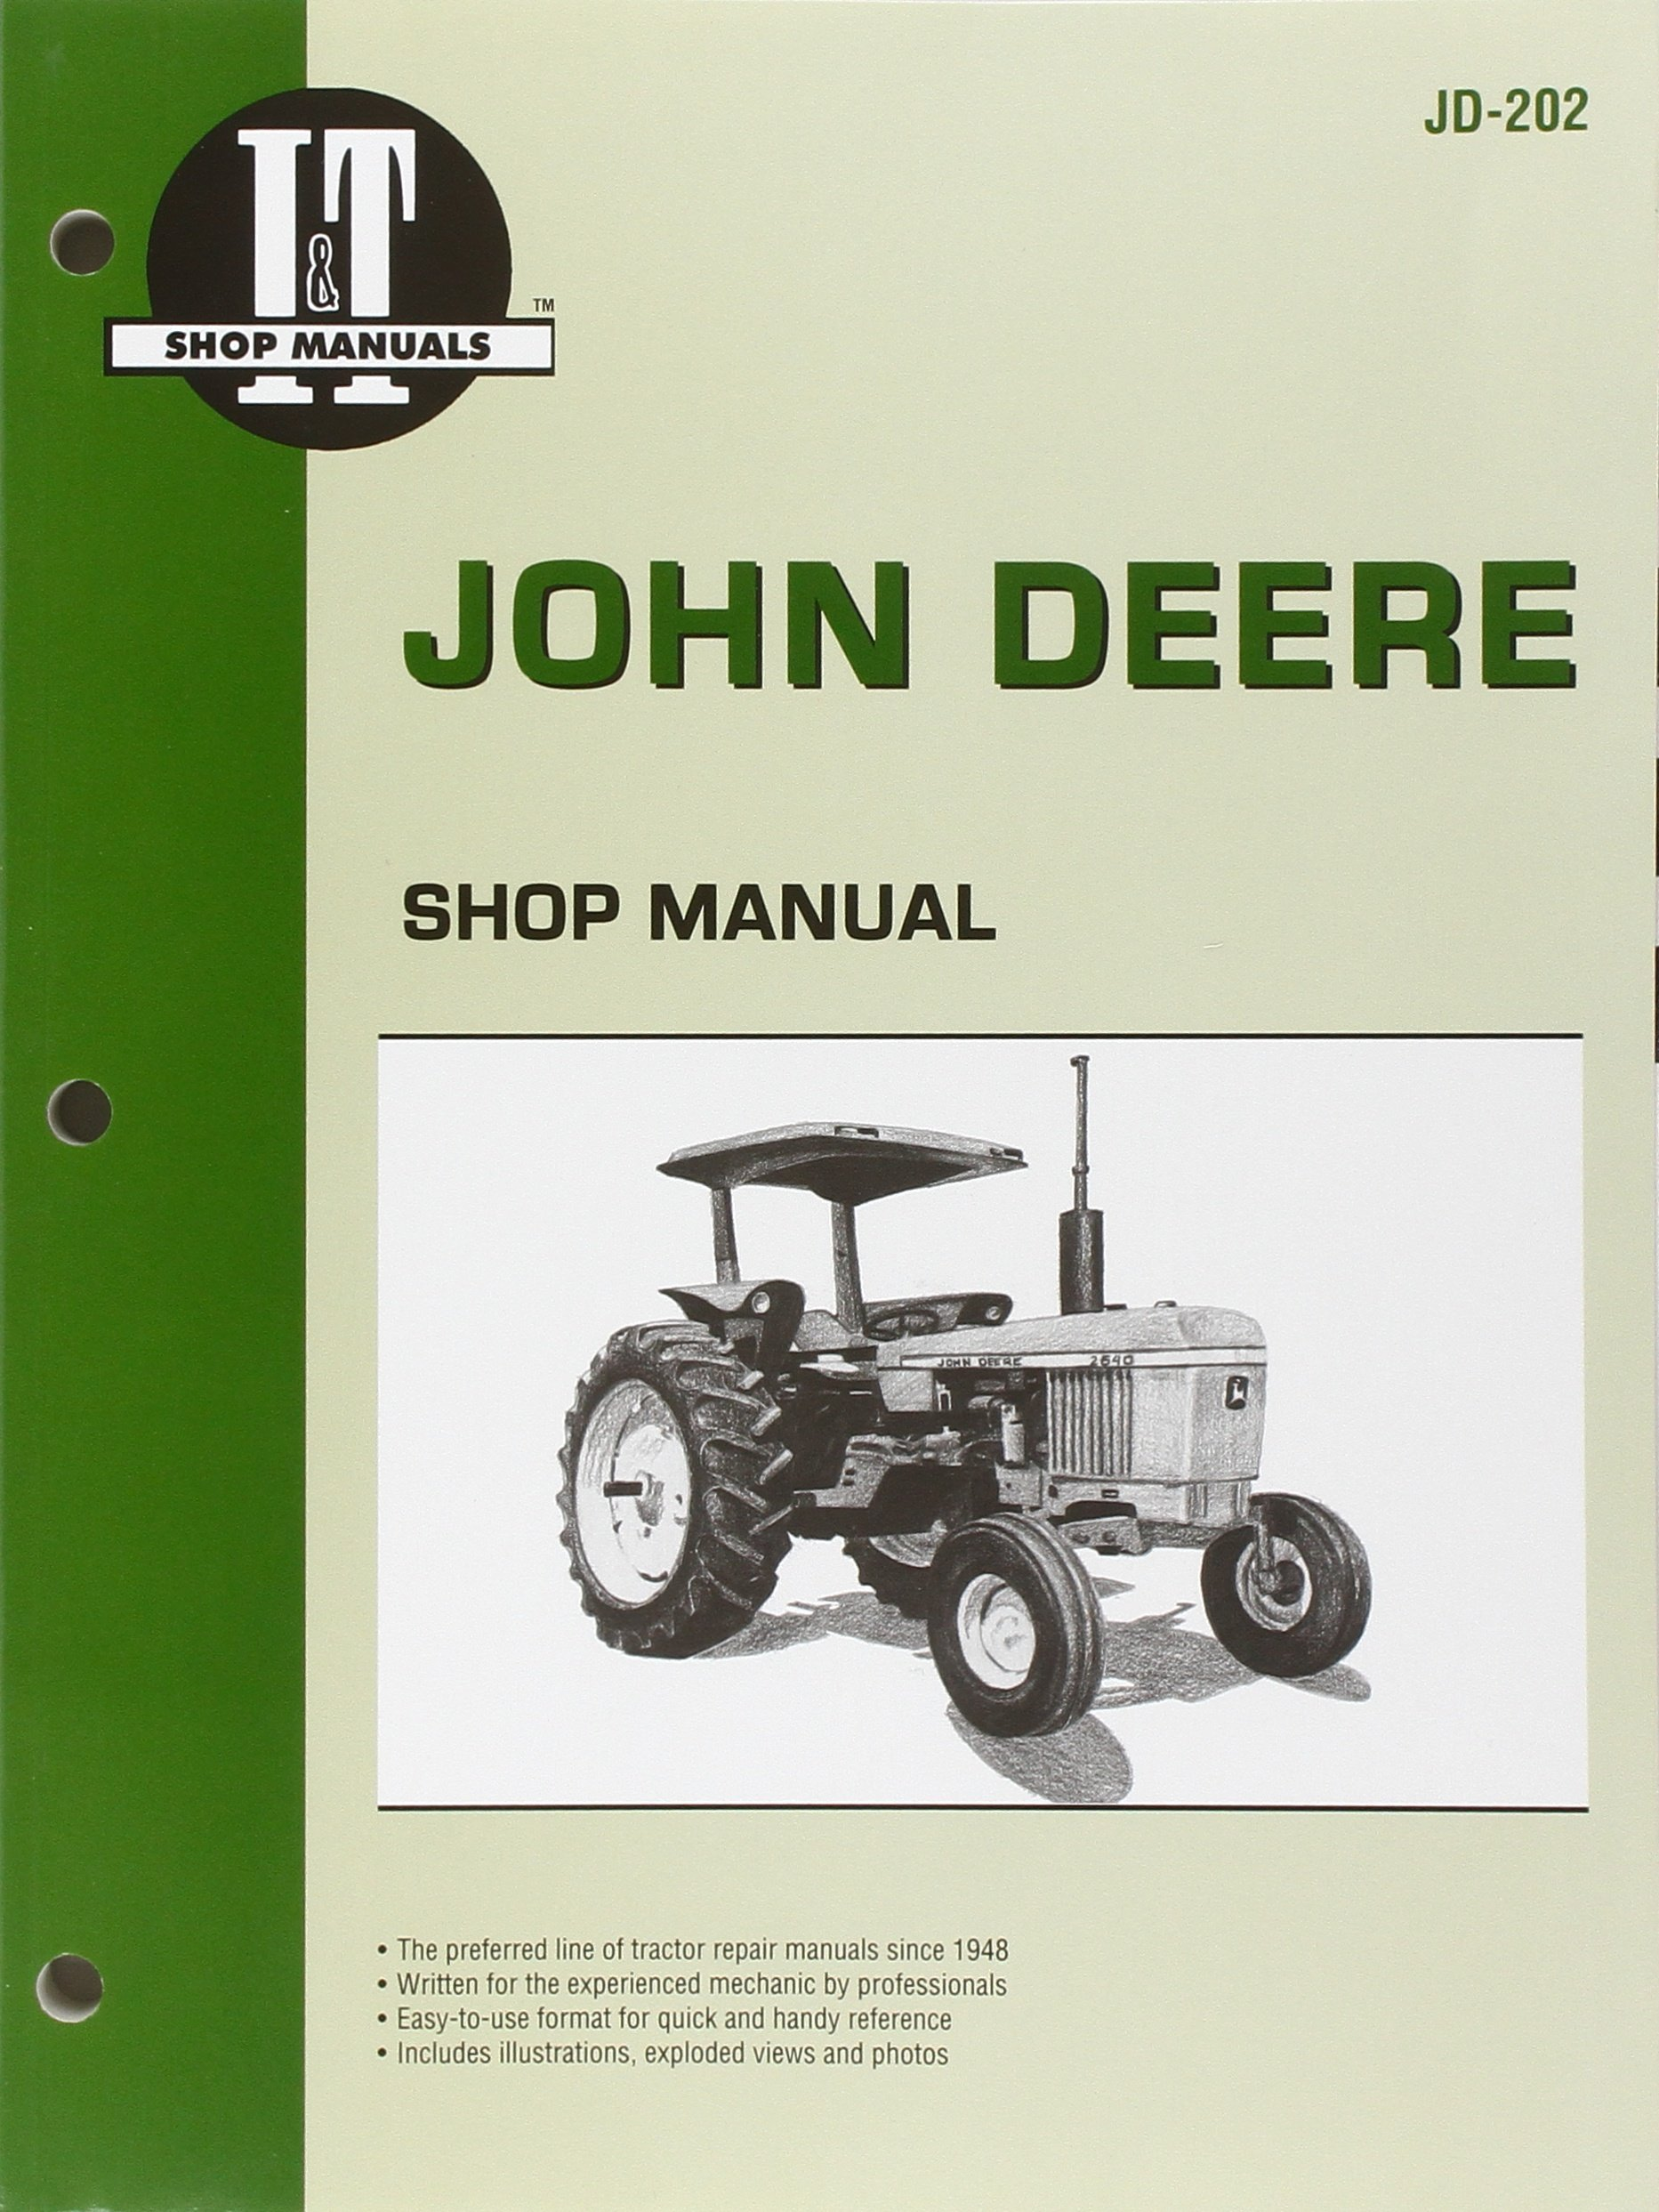 John Deere Shop Manual Jd-202 Models: 2510, 2520, 2040, 2240, 2440, 2640,  2840, 4040, 4240, 4440, 4640, 4840 (I&T Shop Service): Penton Staff: ...